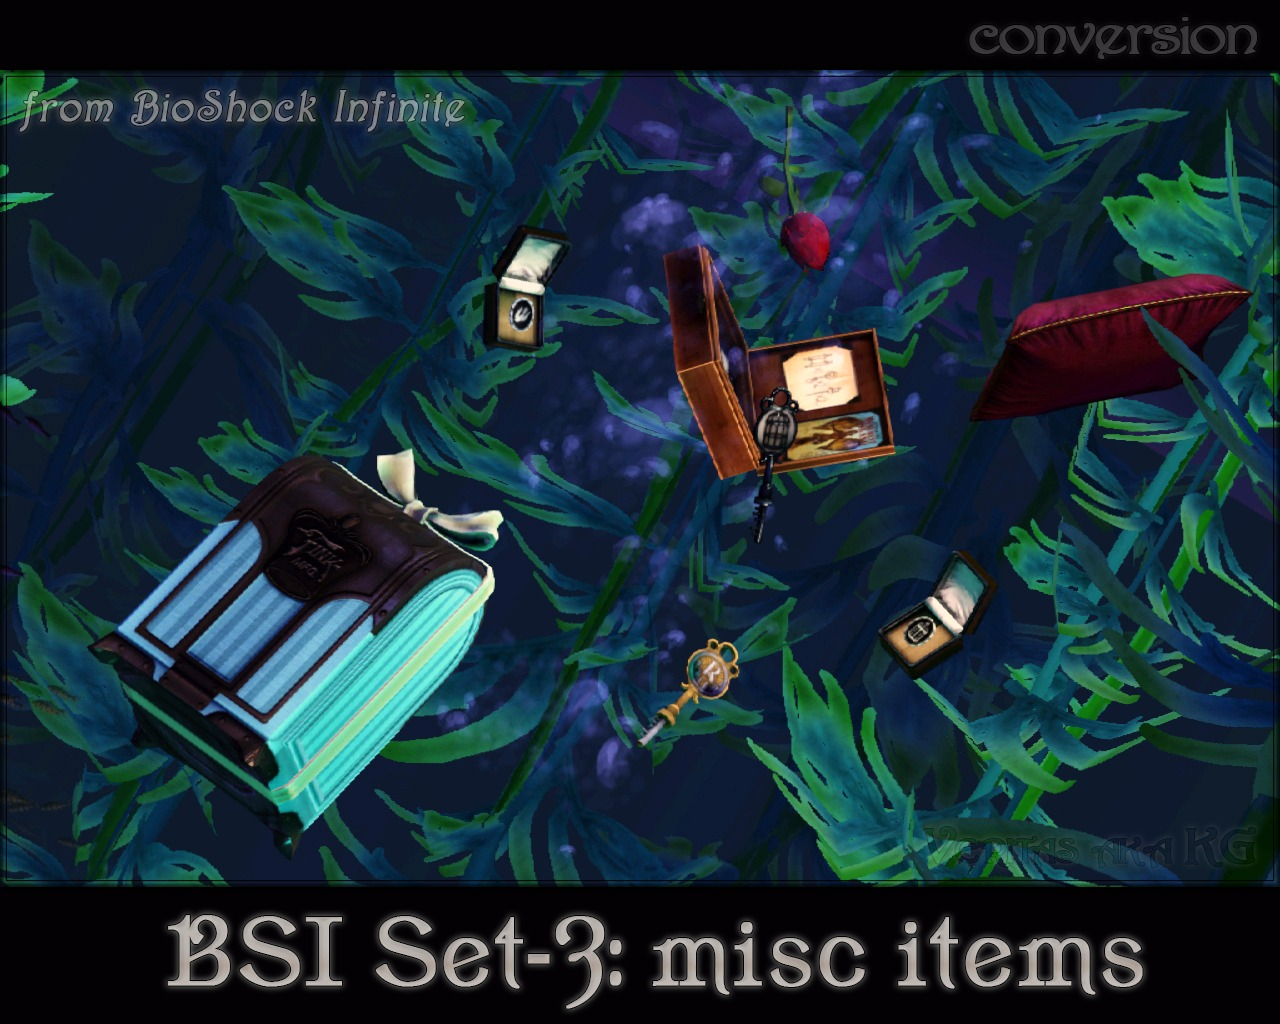 BioShock Infinite Misc Items by Veritas aka KG